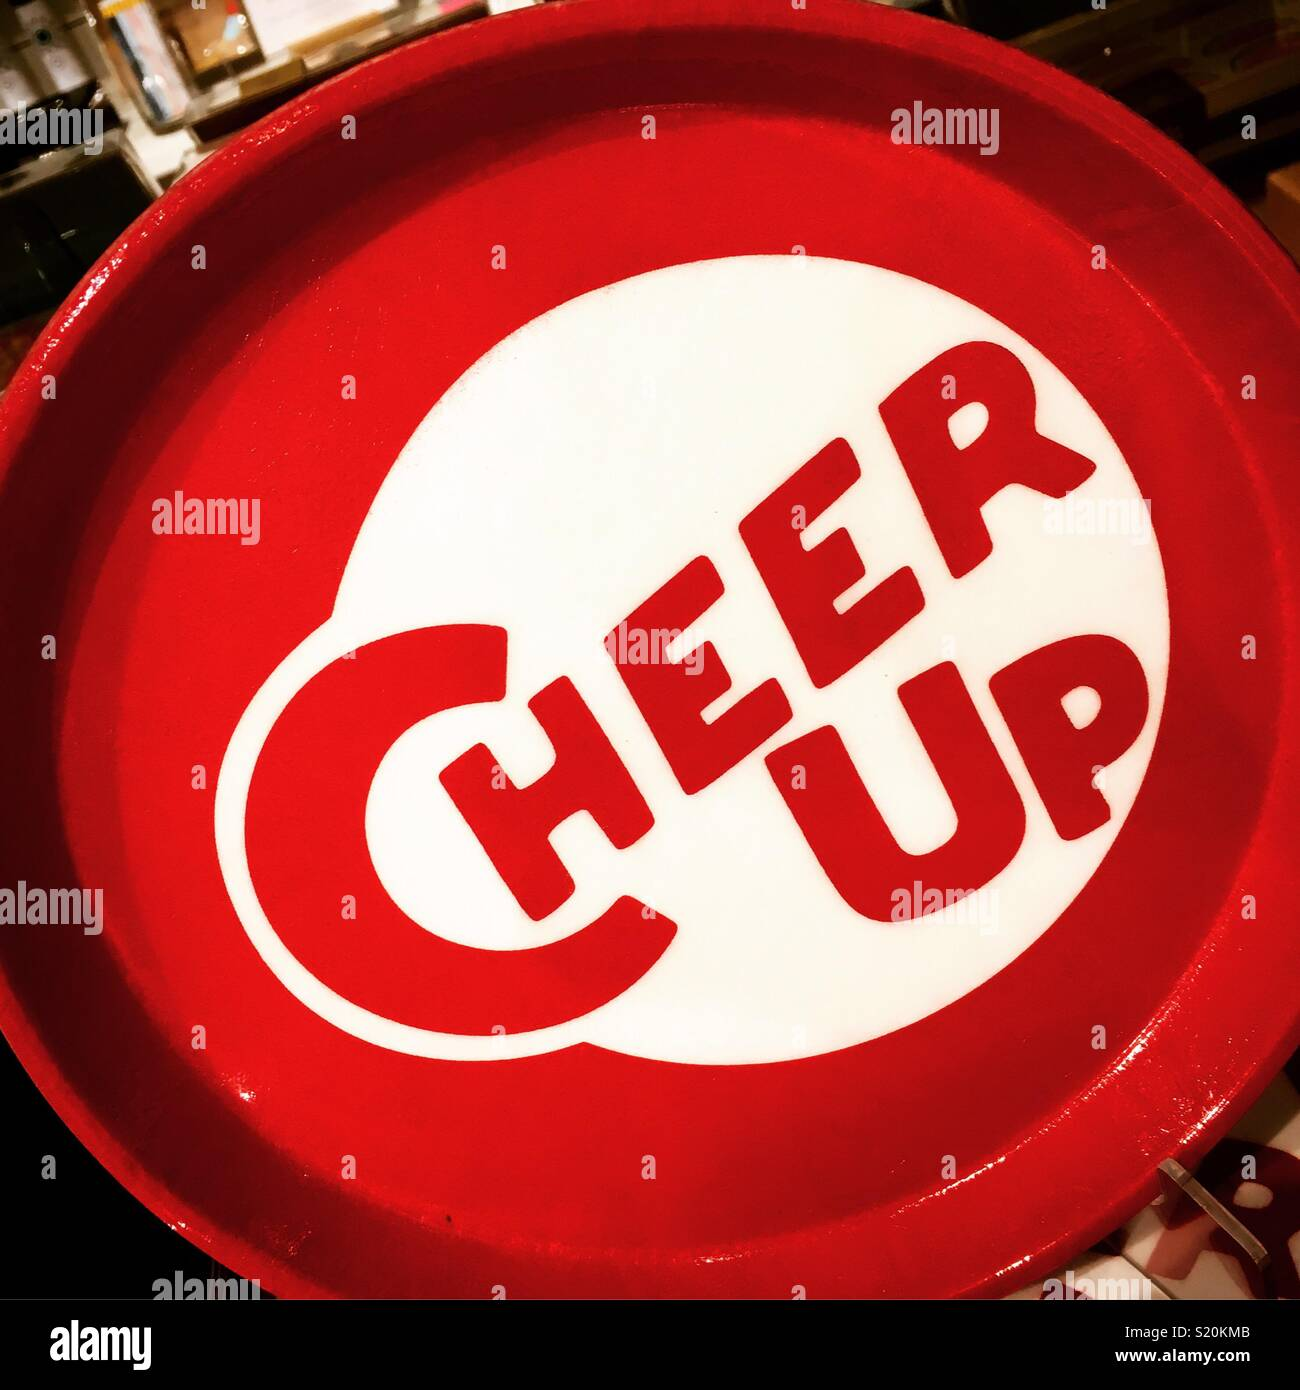 Cheer Up - Stock Image